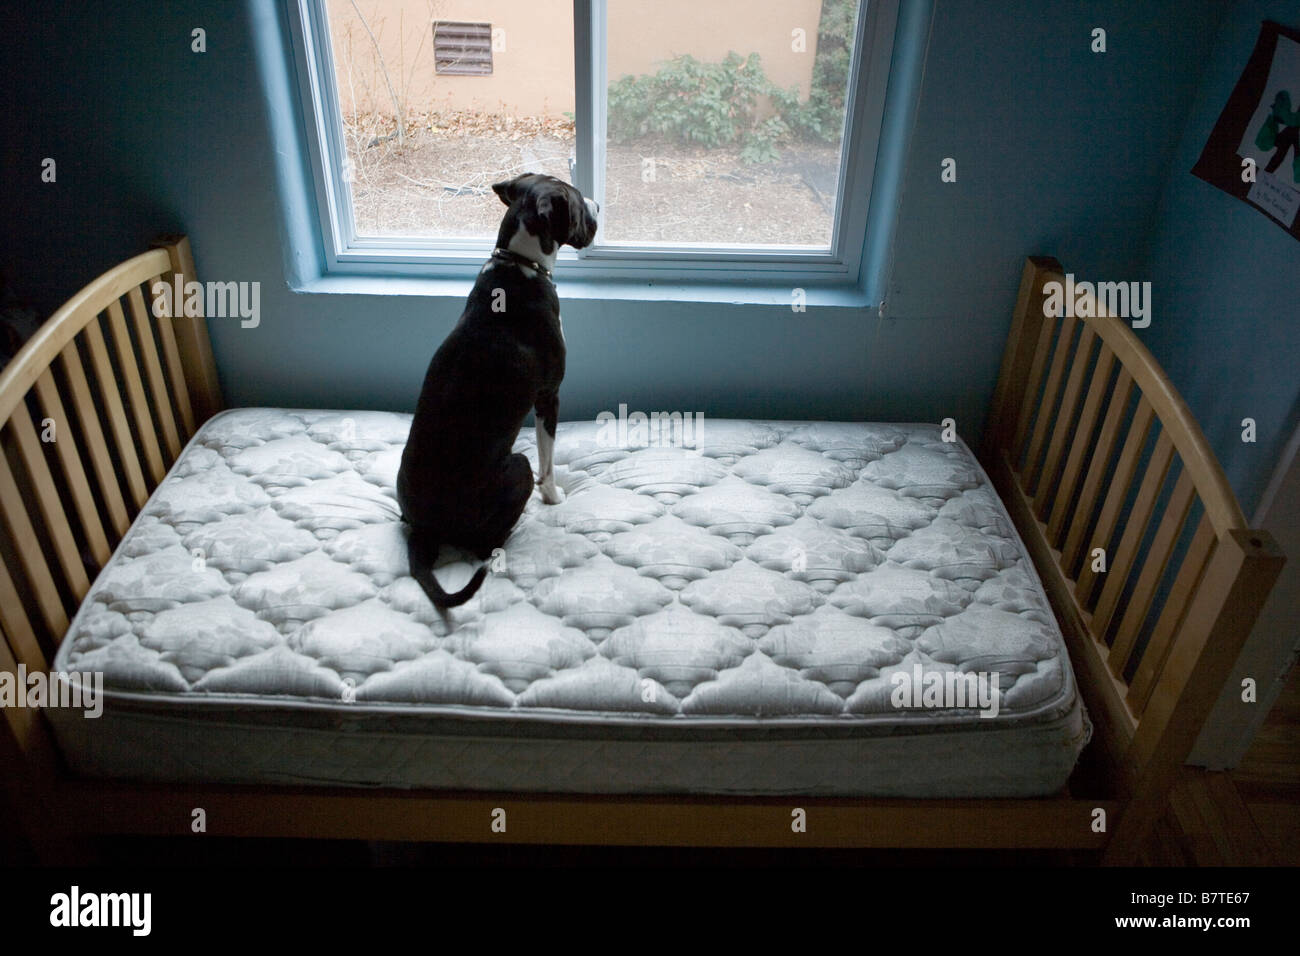 dog sitting on mattress alone, looking out the window - Stock Image